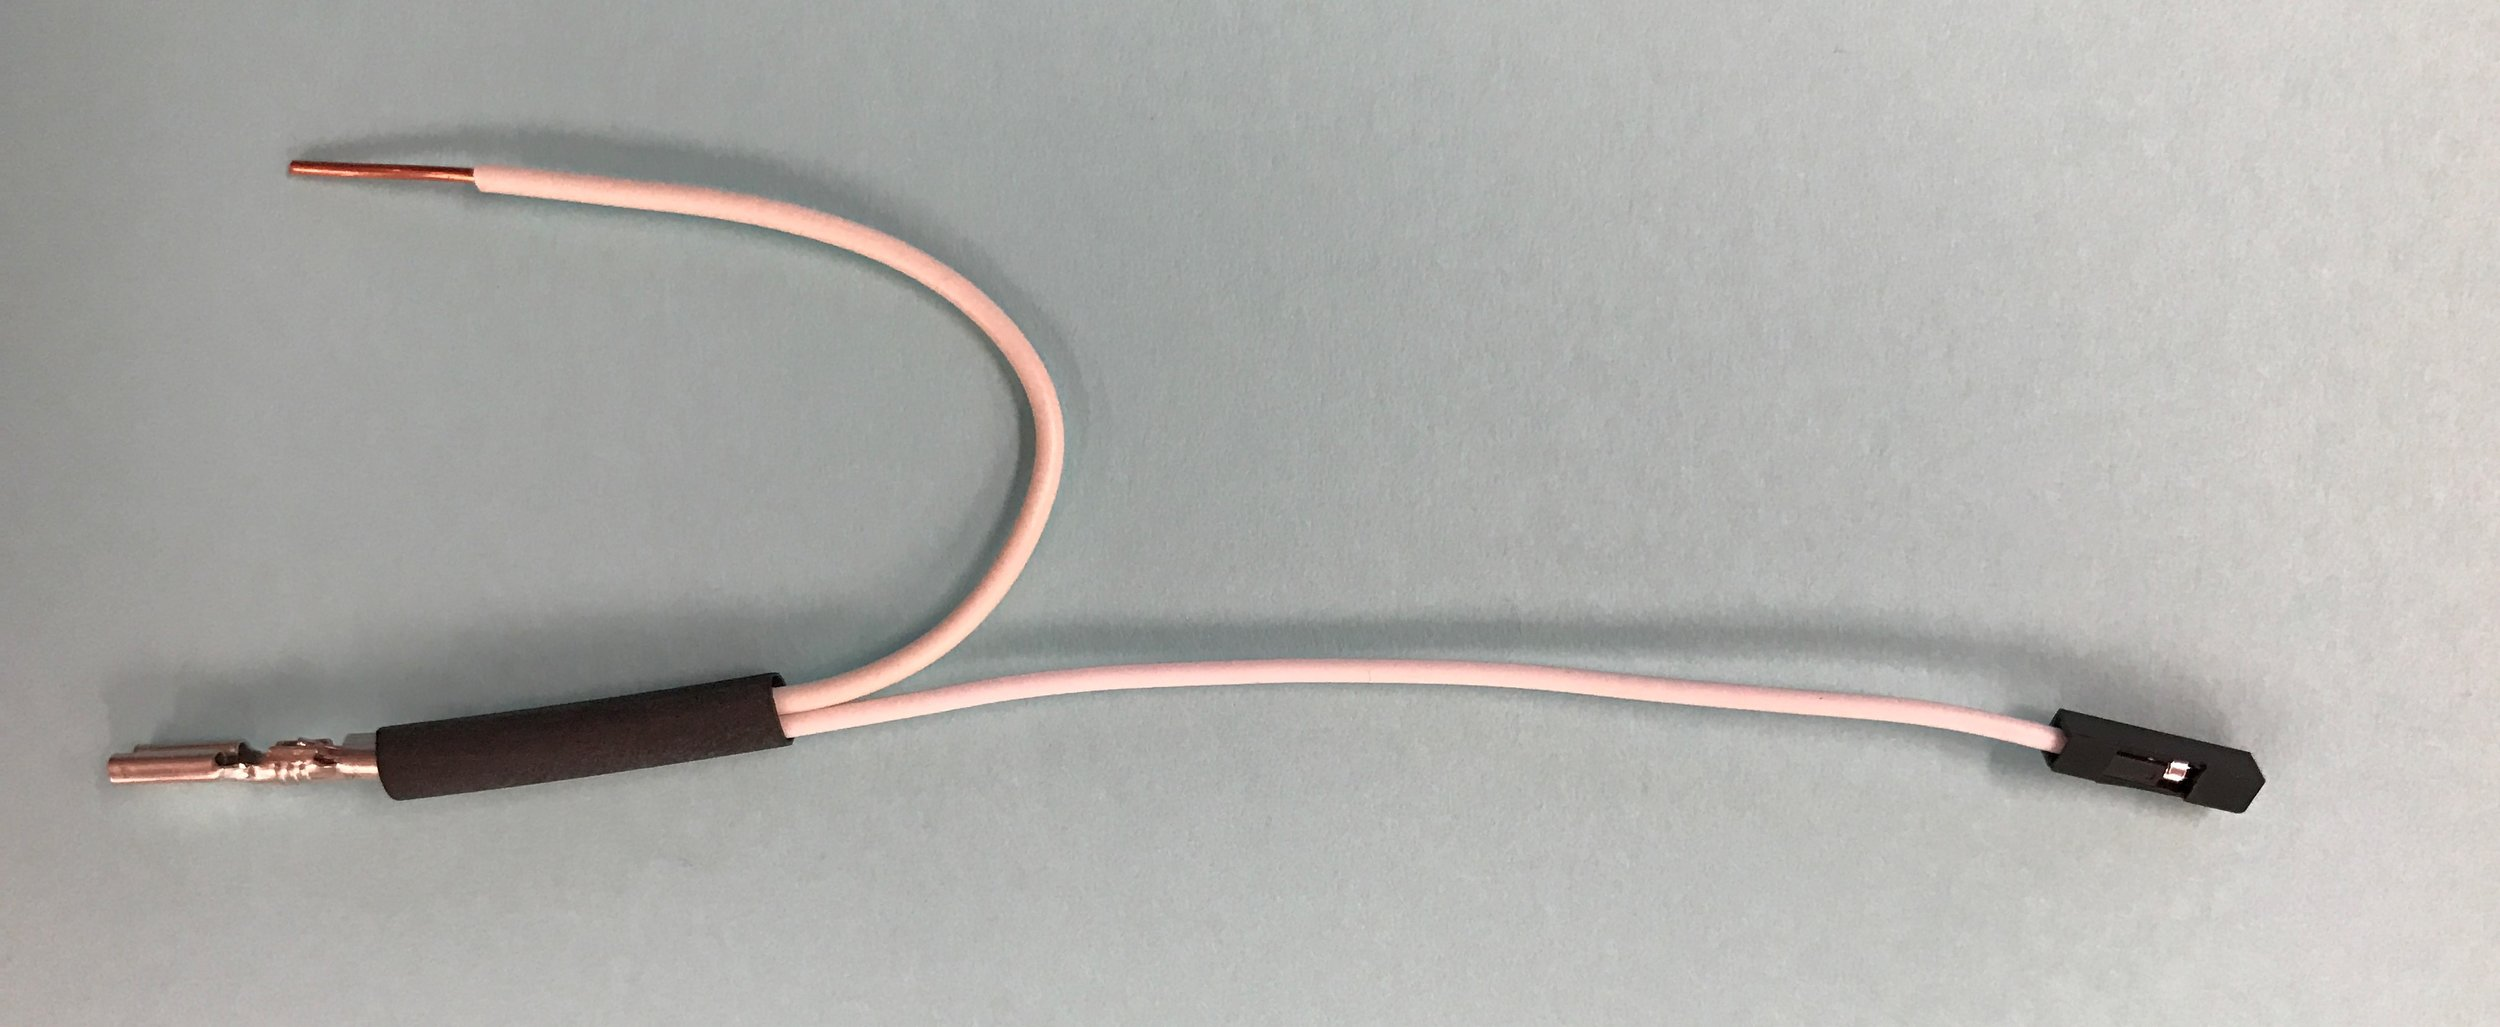 - Now, take a white jumper wire and remove the plastic sheath from one end, to expose the connector, just as you did to create a button wire (above).Hold the connector next to one end of one of your 10cm wire U-shapes.Insert both wires together into a crimp and compress the crimp until the wires are firmly held together.